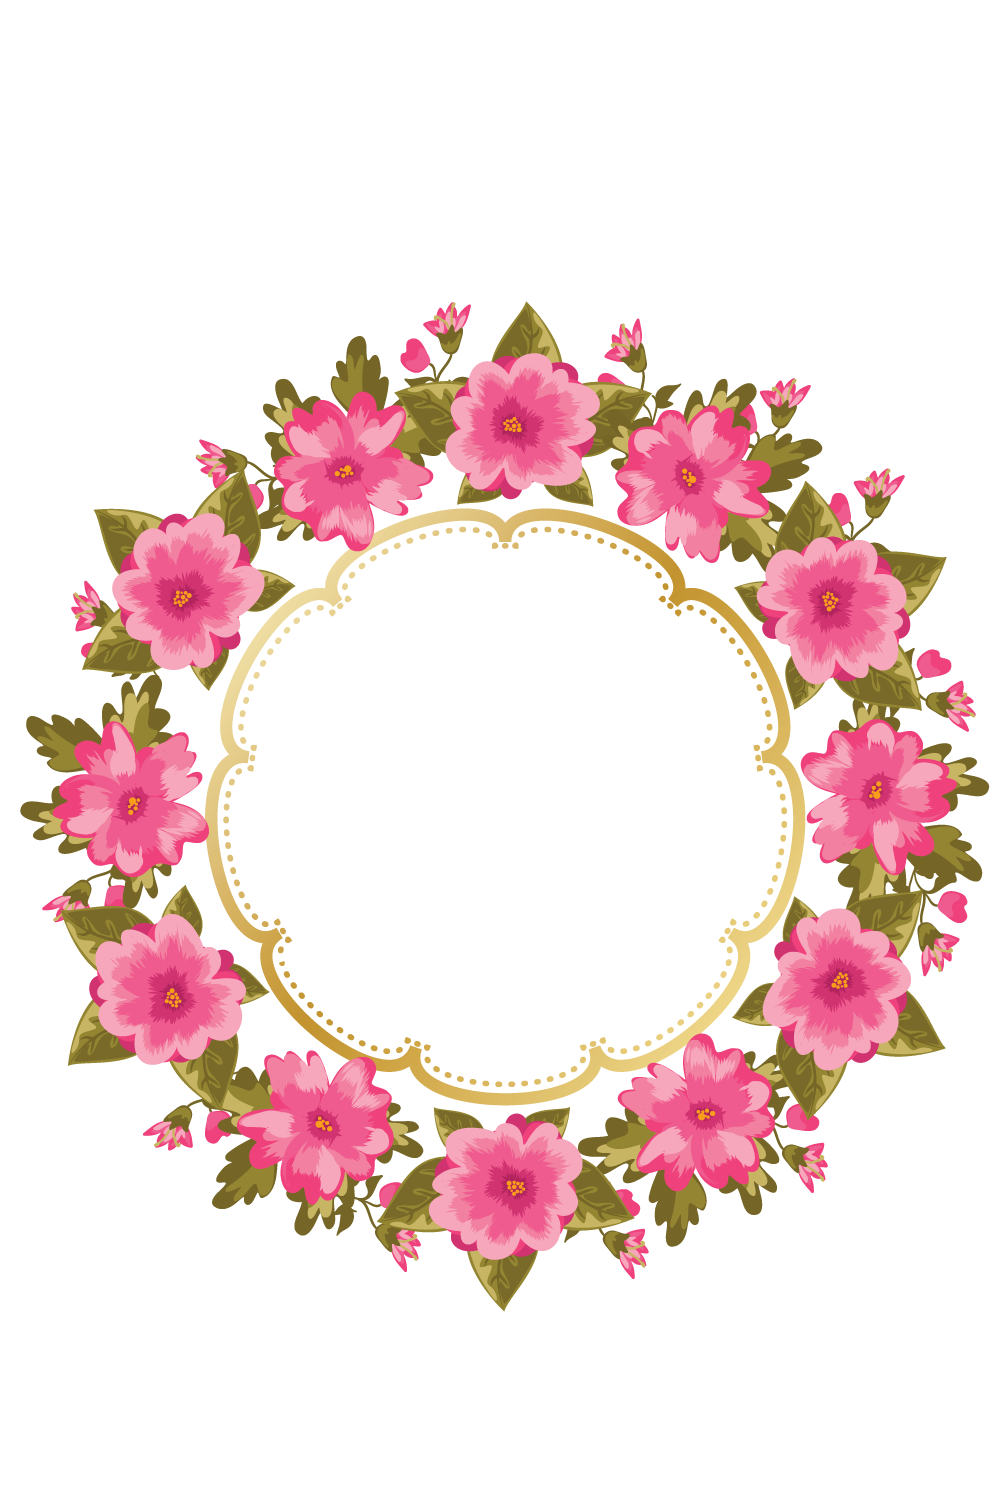 Http e top net. Watercolor flower wreath png png transparent download